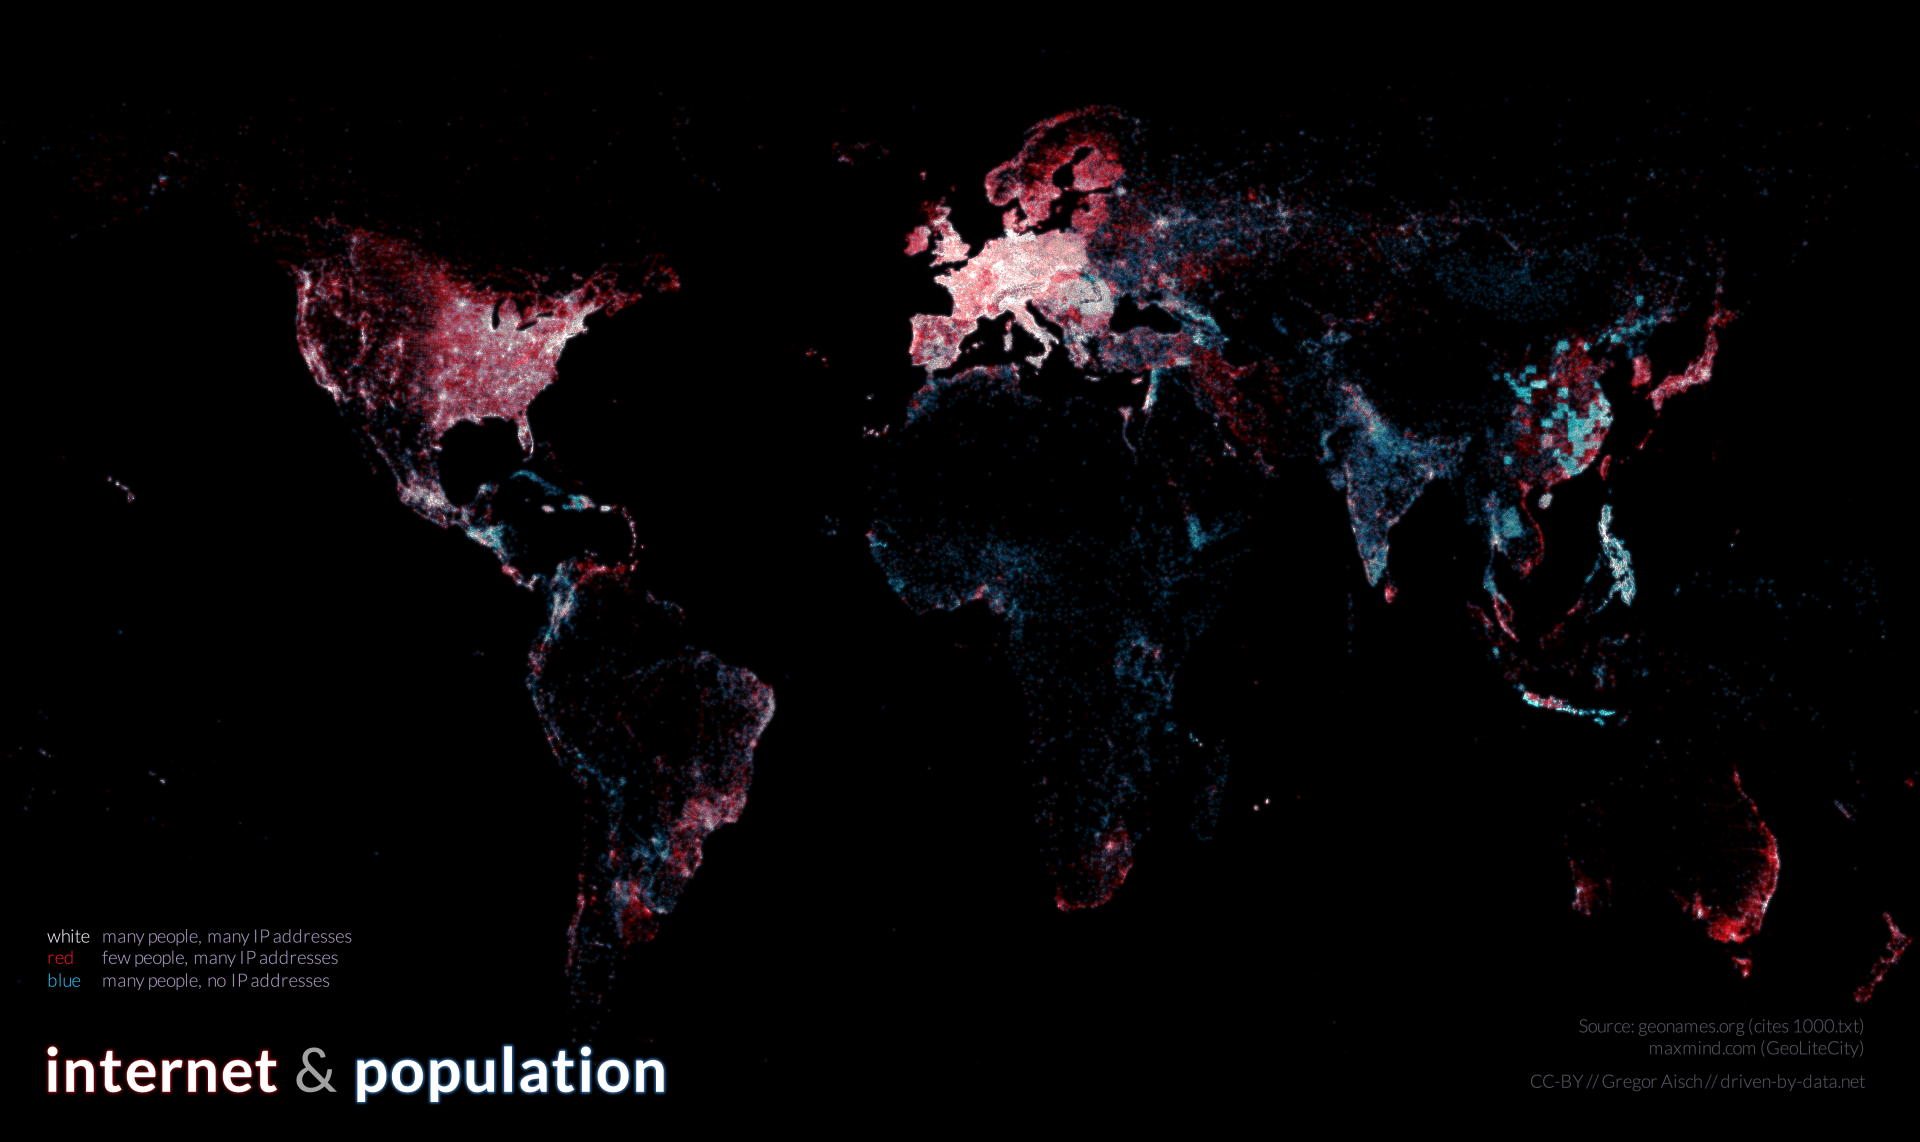 gregor-aisch-internet_and_population_hires-1920x1142